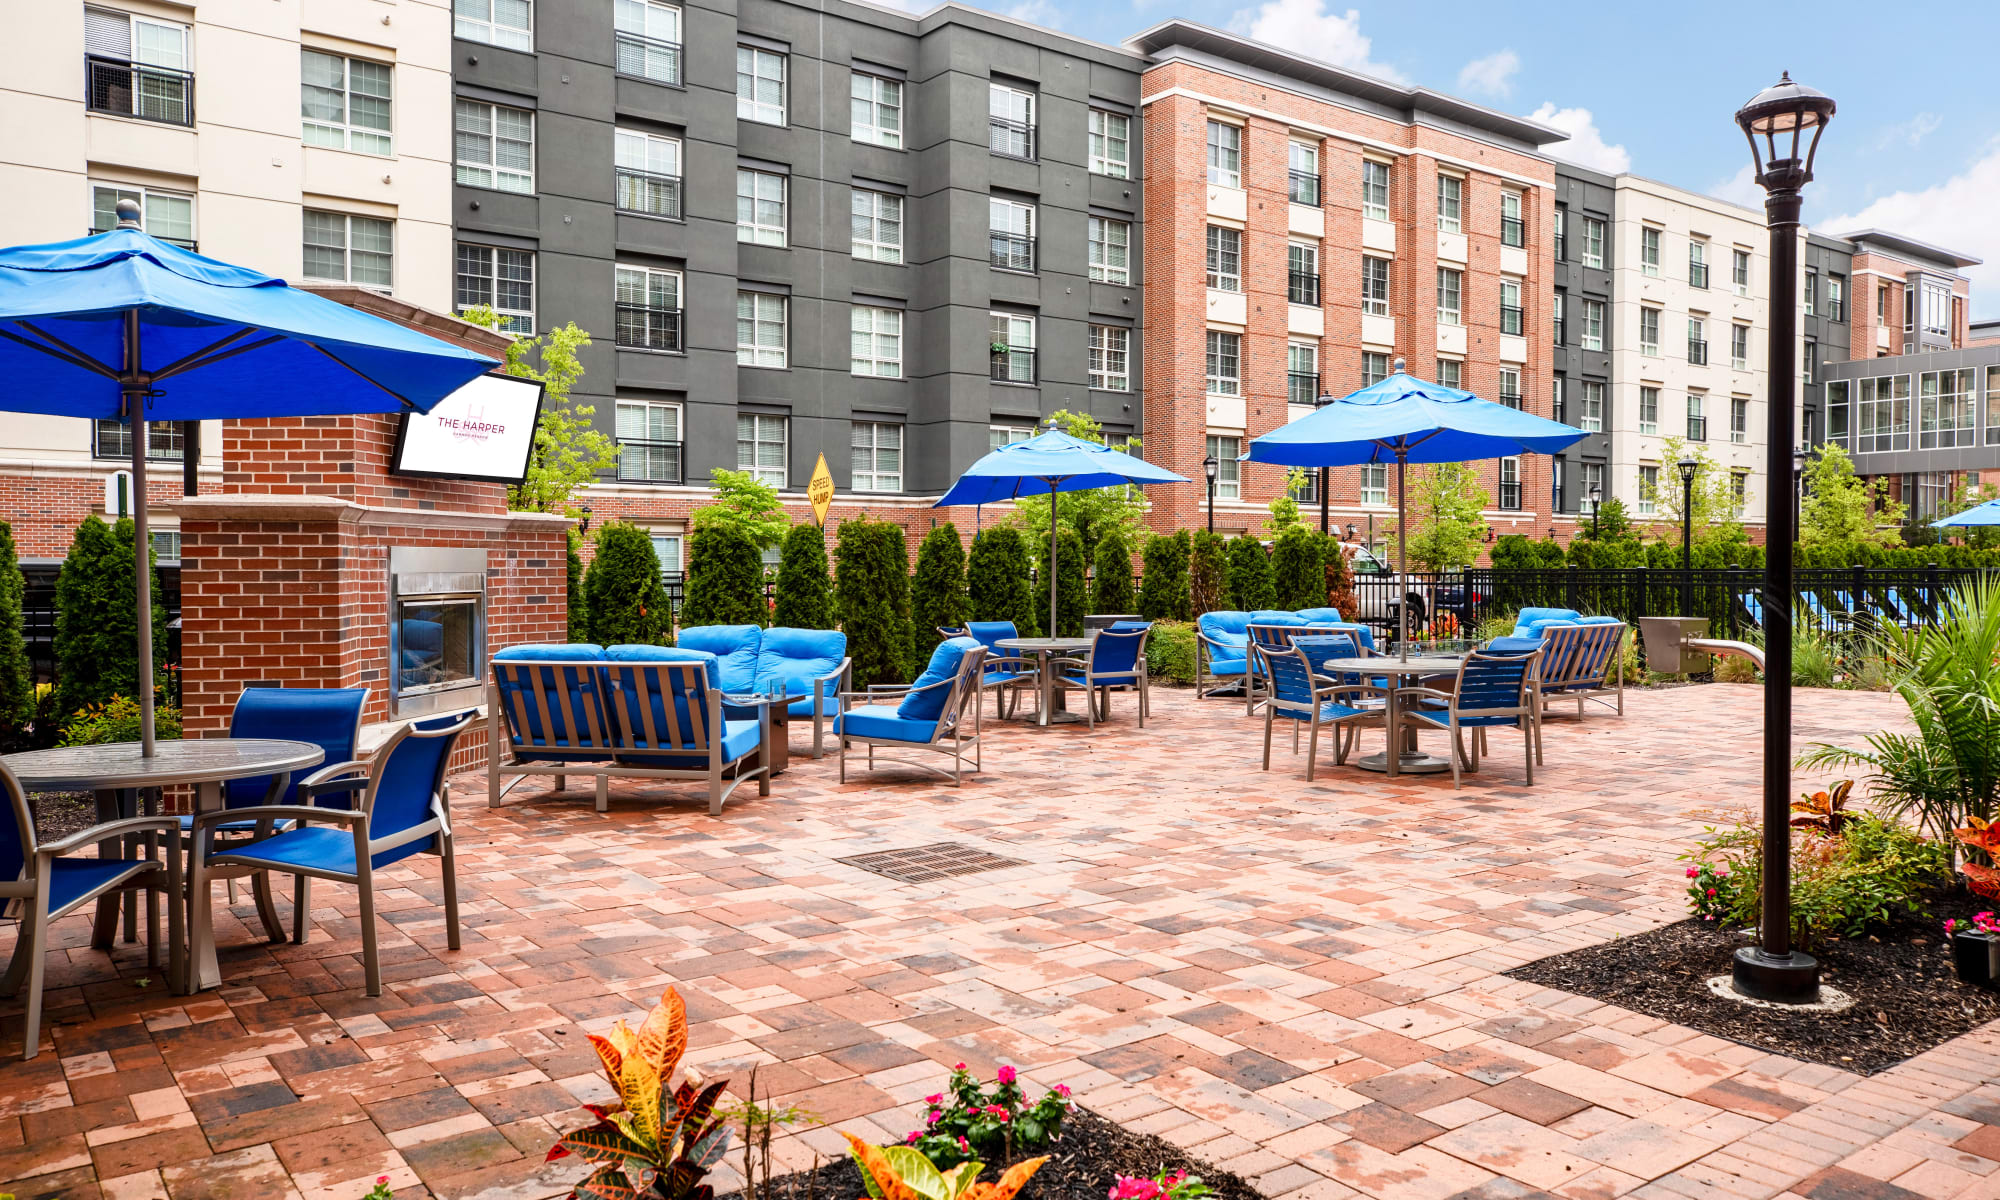 Sit by the outdoor fireplace at The Harper at Harmon Meadow in Secaucus, New Jersey